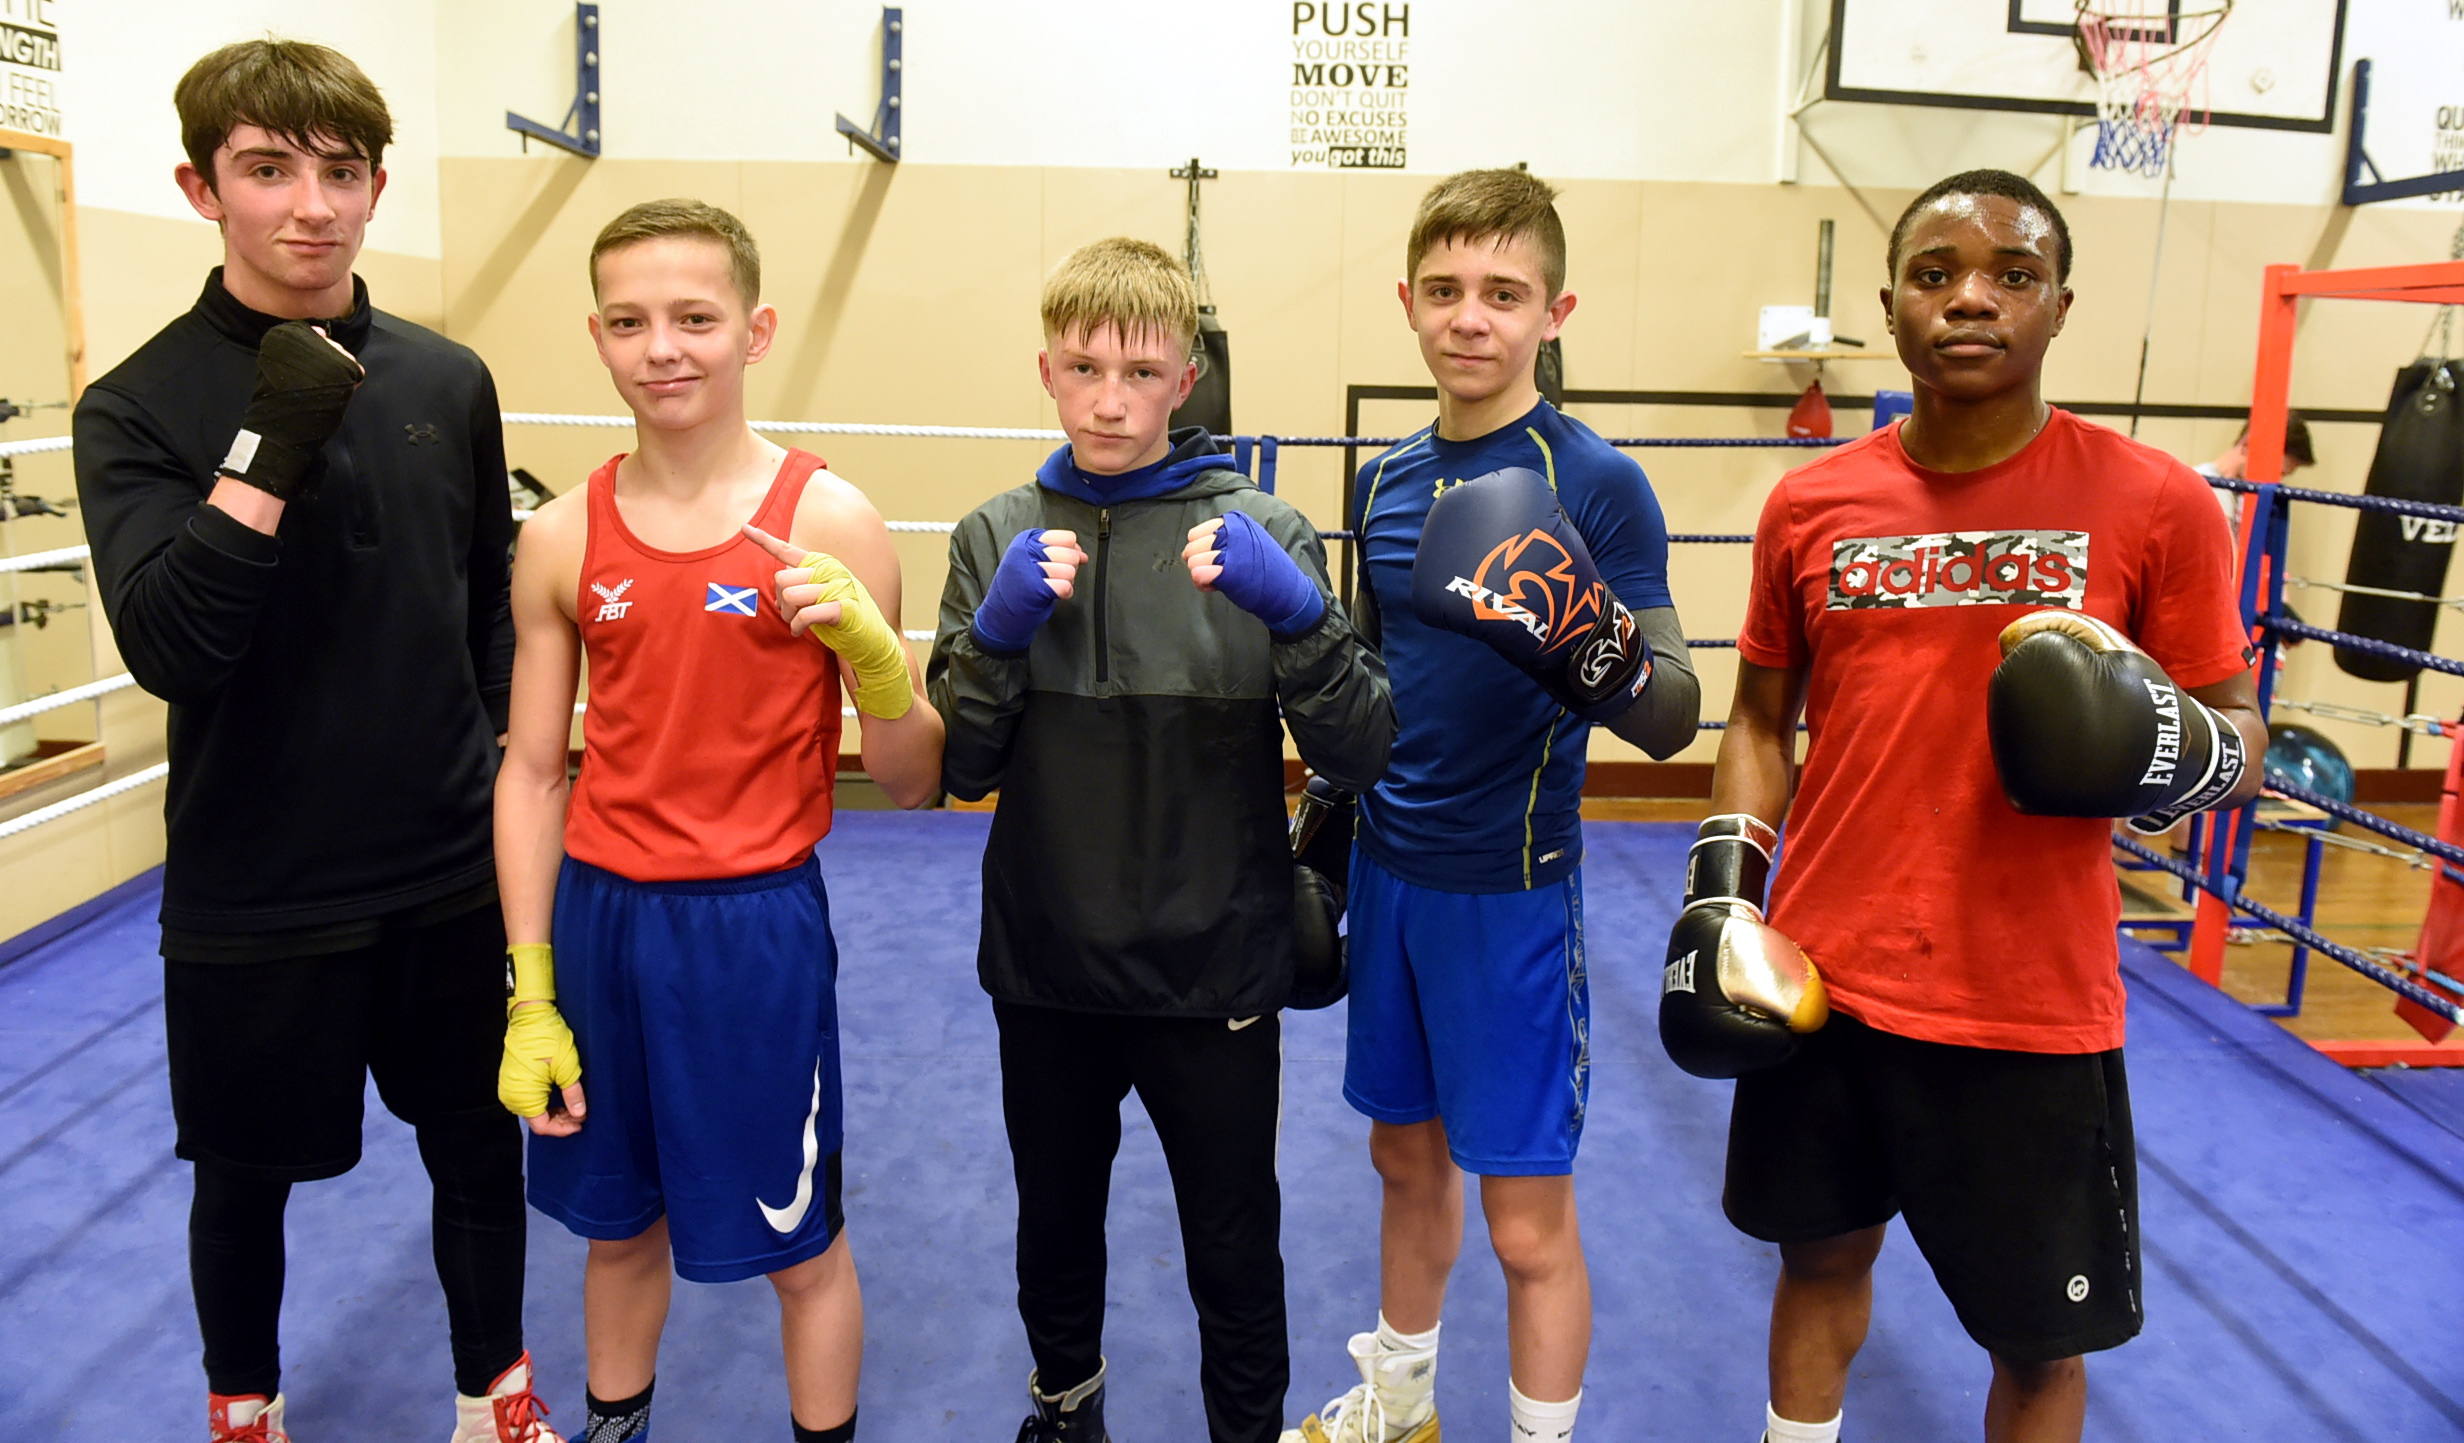 From left, Ritchie Whyte, Sonny Kerr, Gregor McPherson, Willie Williamson and Fawaz Aborope at Byron Boxing Club